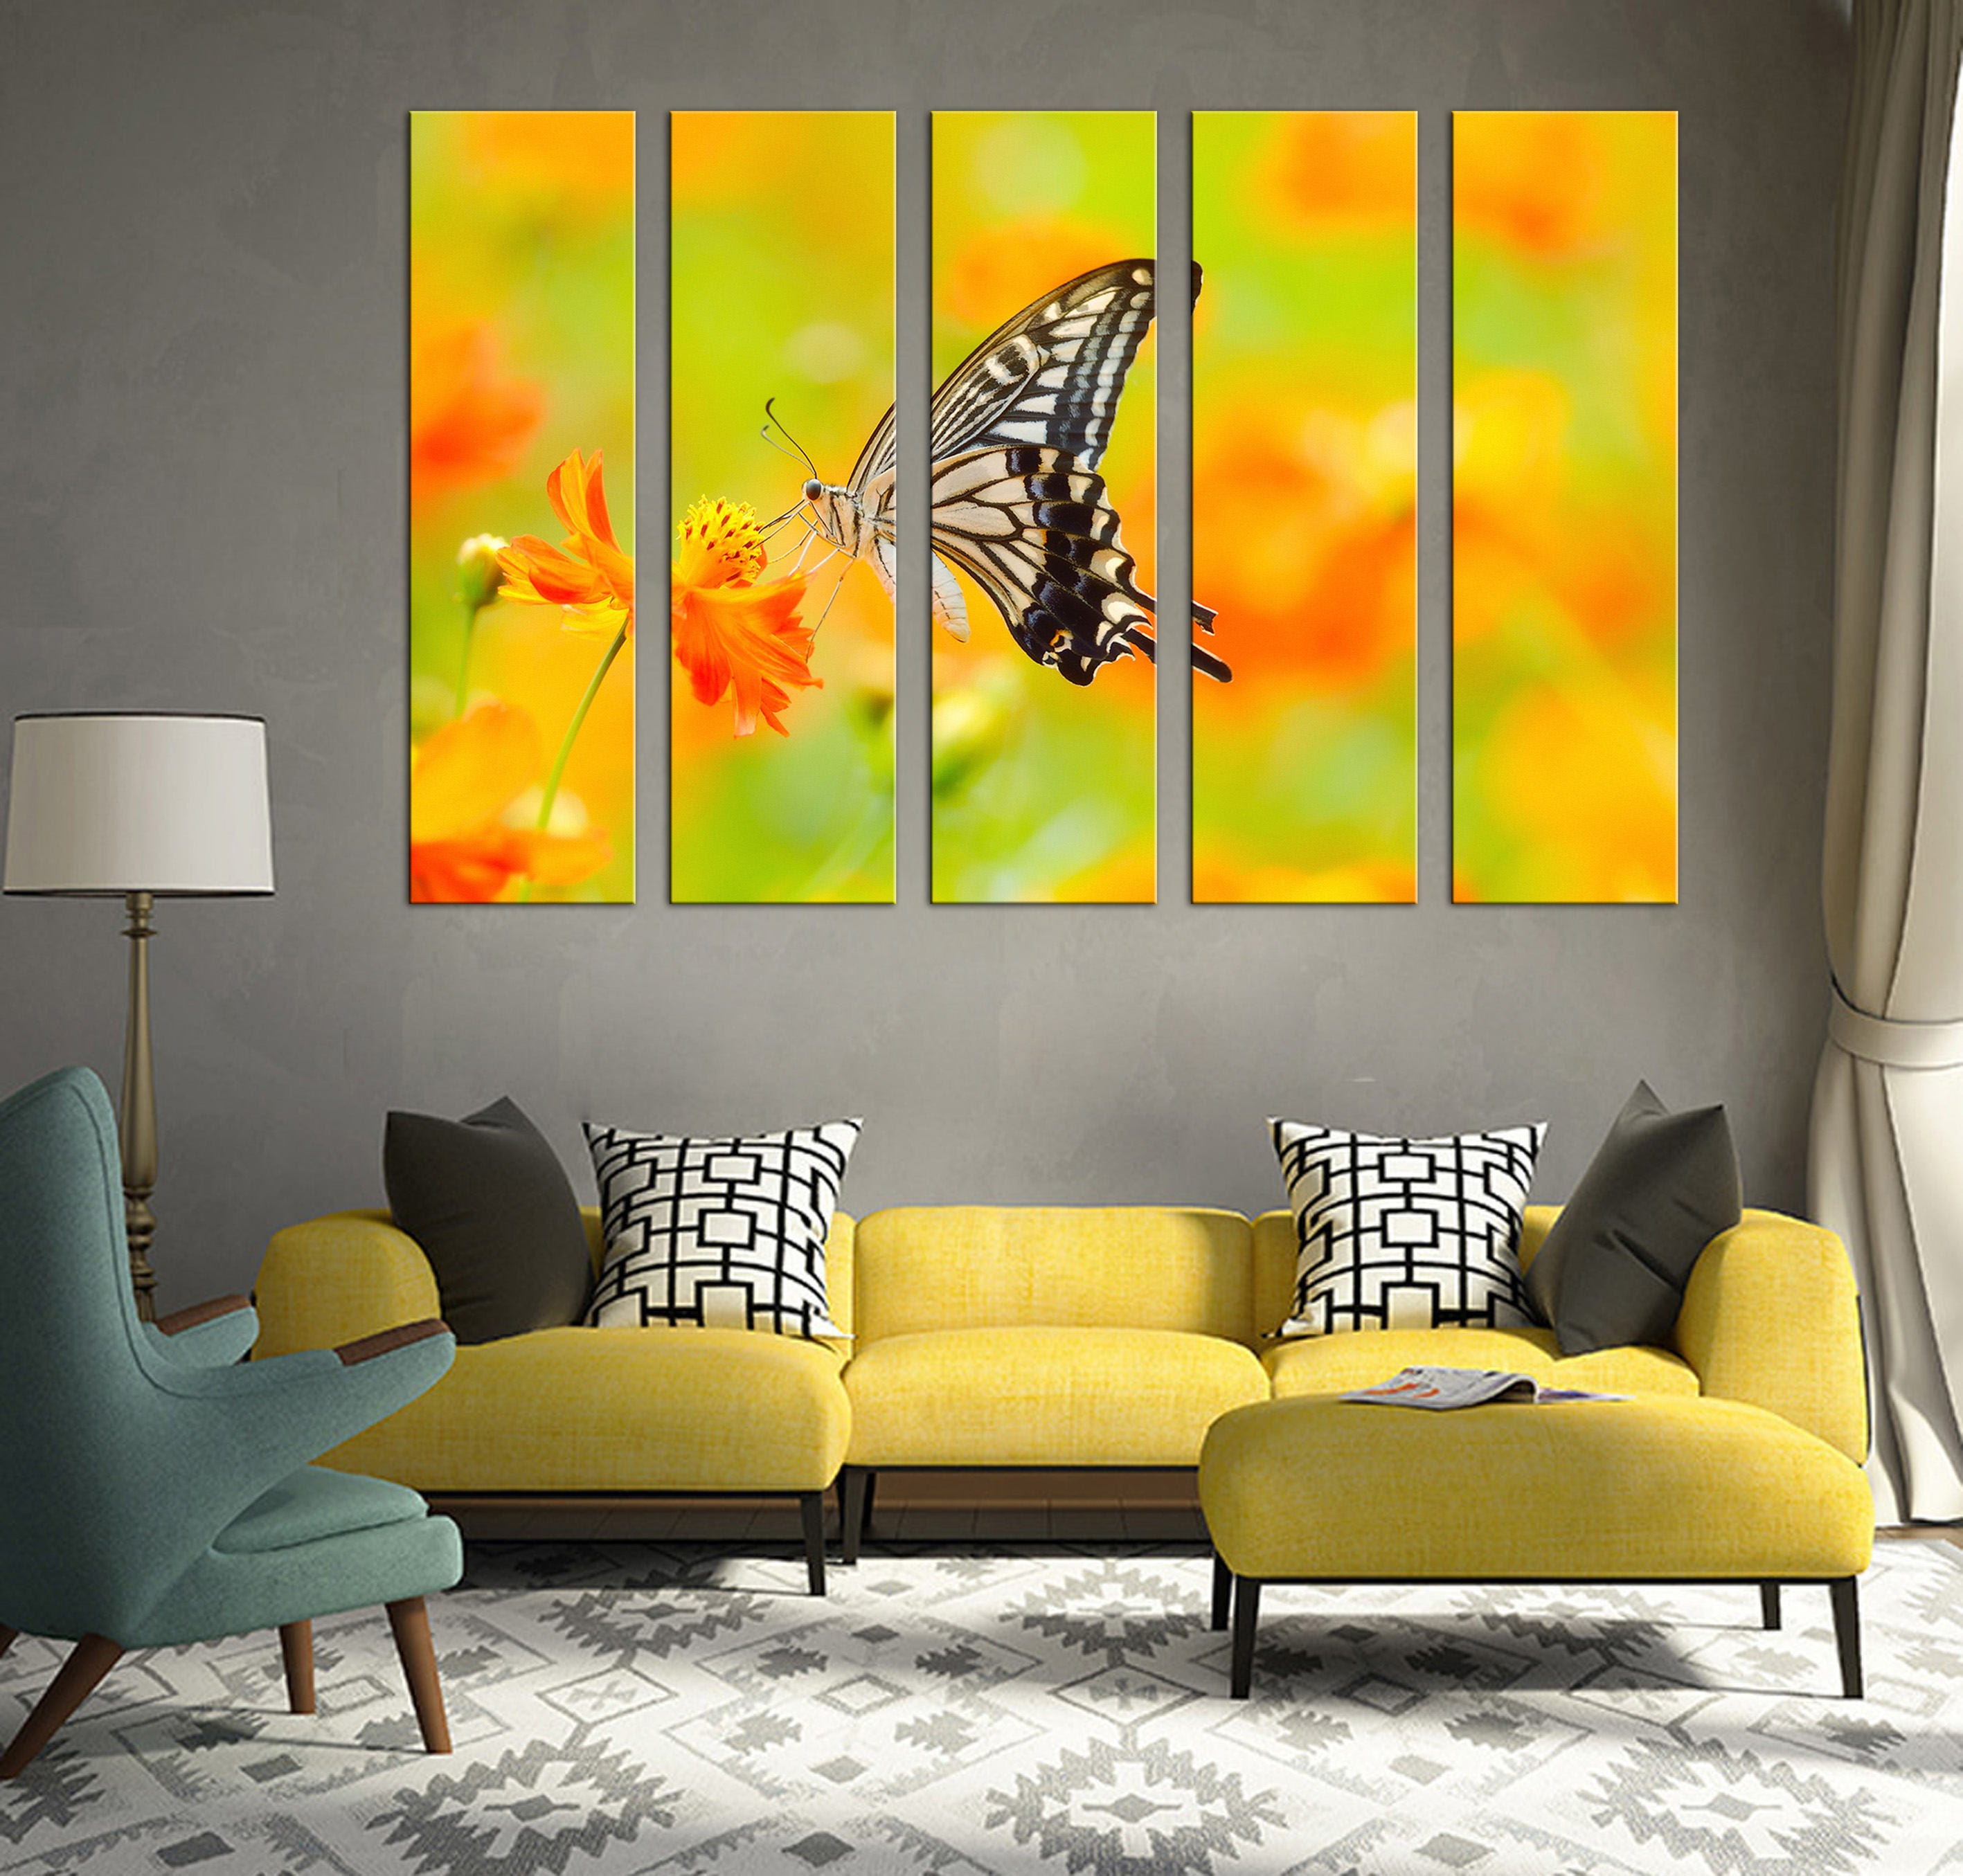 Awesome Wall Decor Art Canvas Ideas - The Wall Art Decorations ...